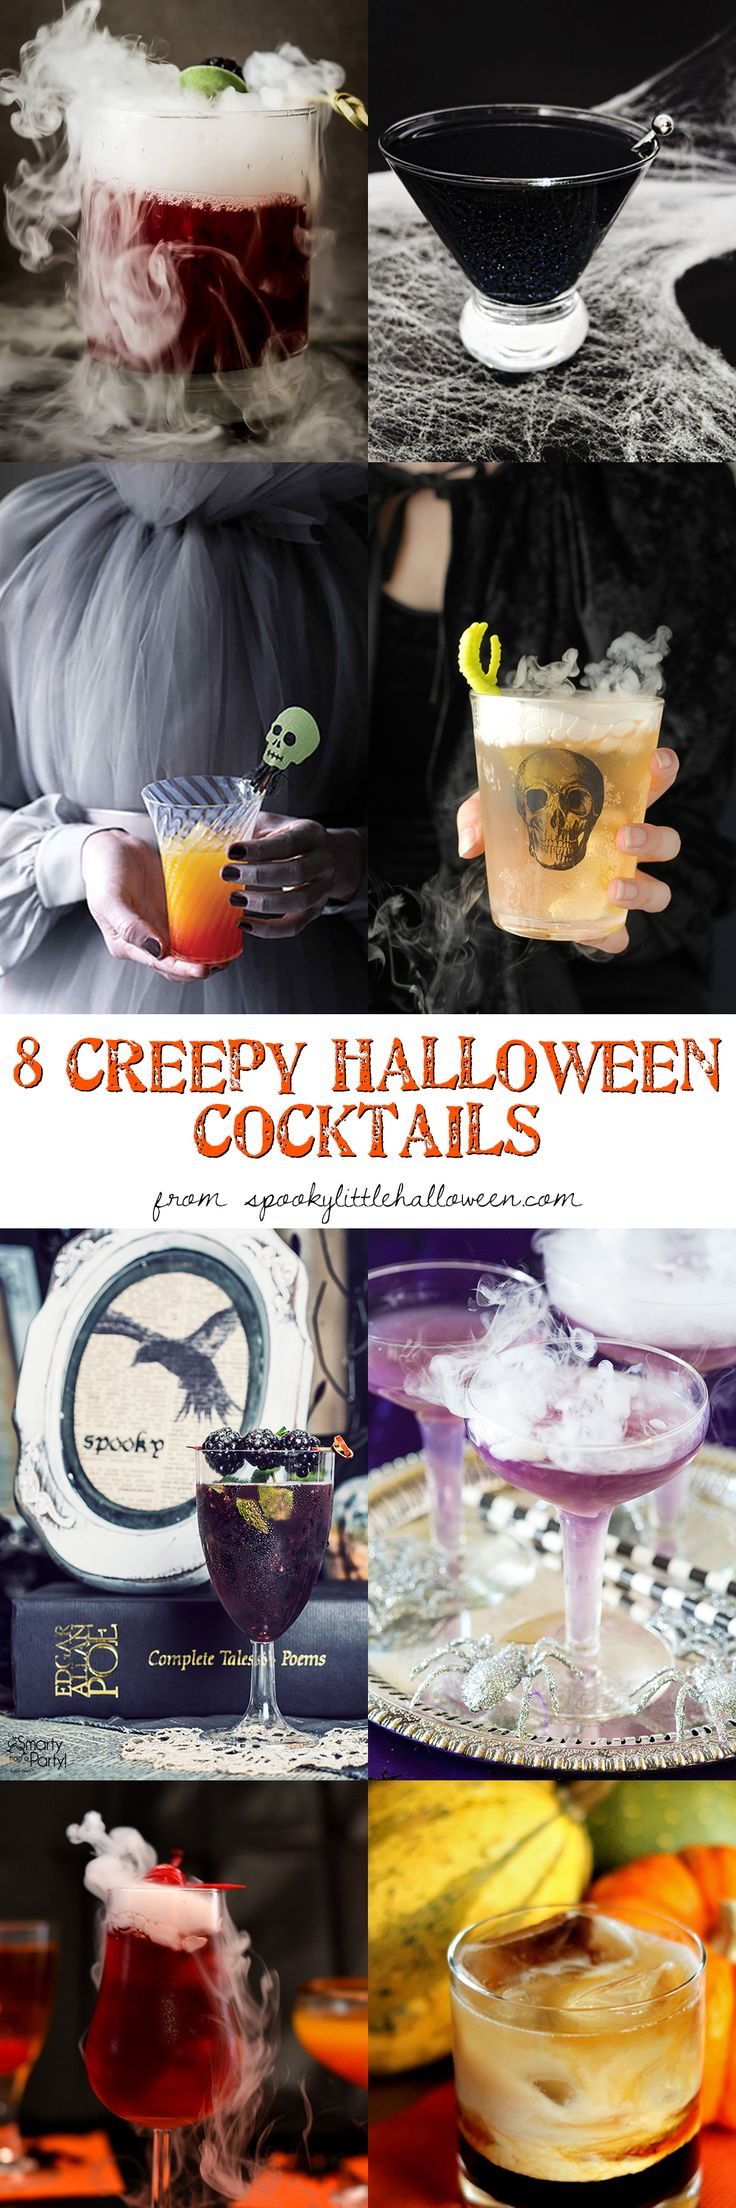 Double double toil and trouble, fire burn and...cocktail glass bubble! Here's 8 creepy Halloween cocktail recipes I'm dying to try.